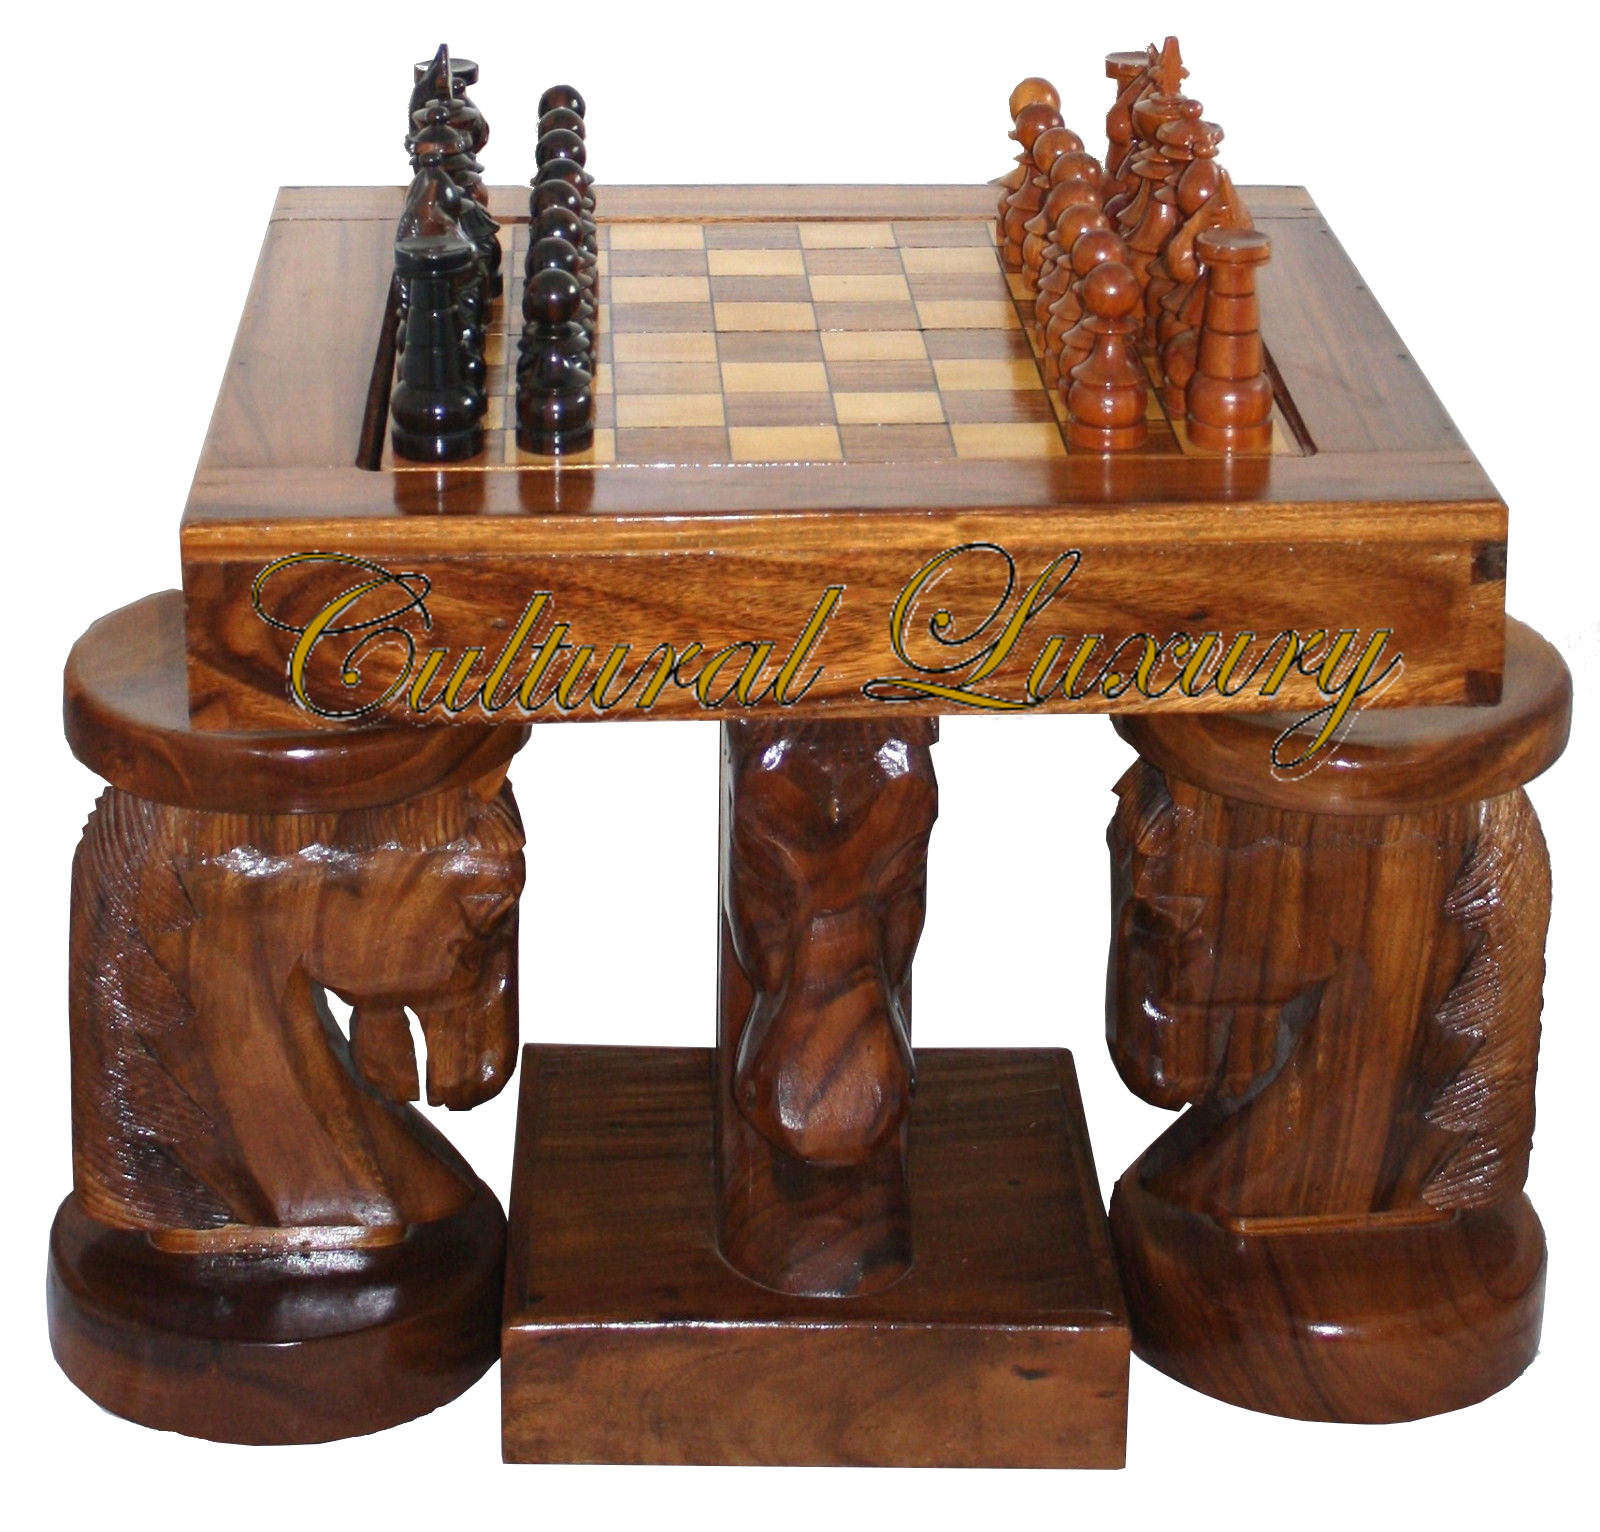 Horse Head Chess Table And Chairs Hand Carved One Of A Kind Price Reduced From 4999 00 This Unique Chess Set Came Fr Backgammon Table Chess Table Wood Chess